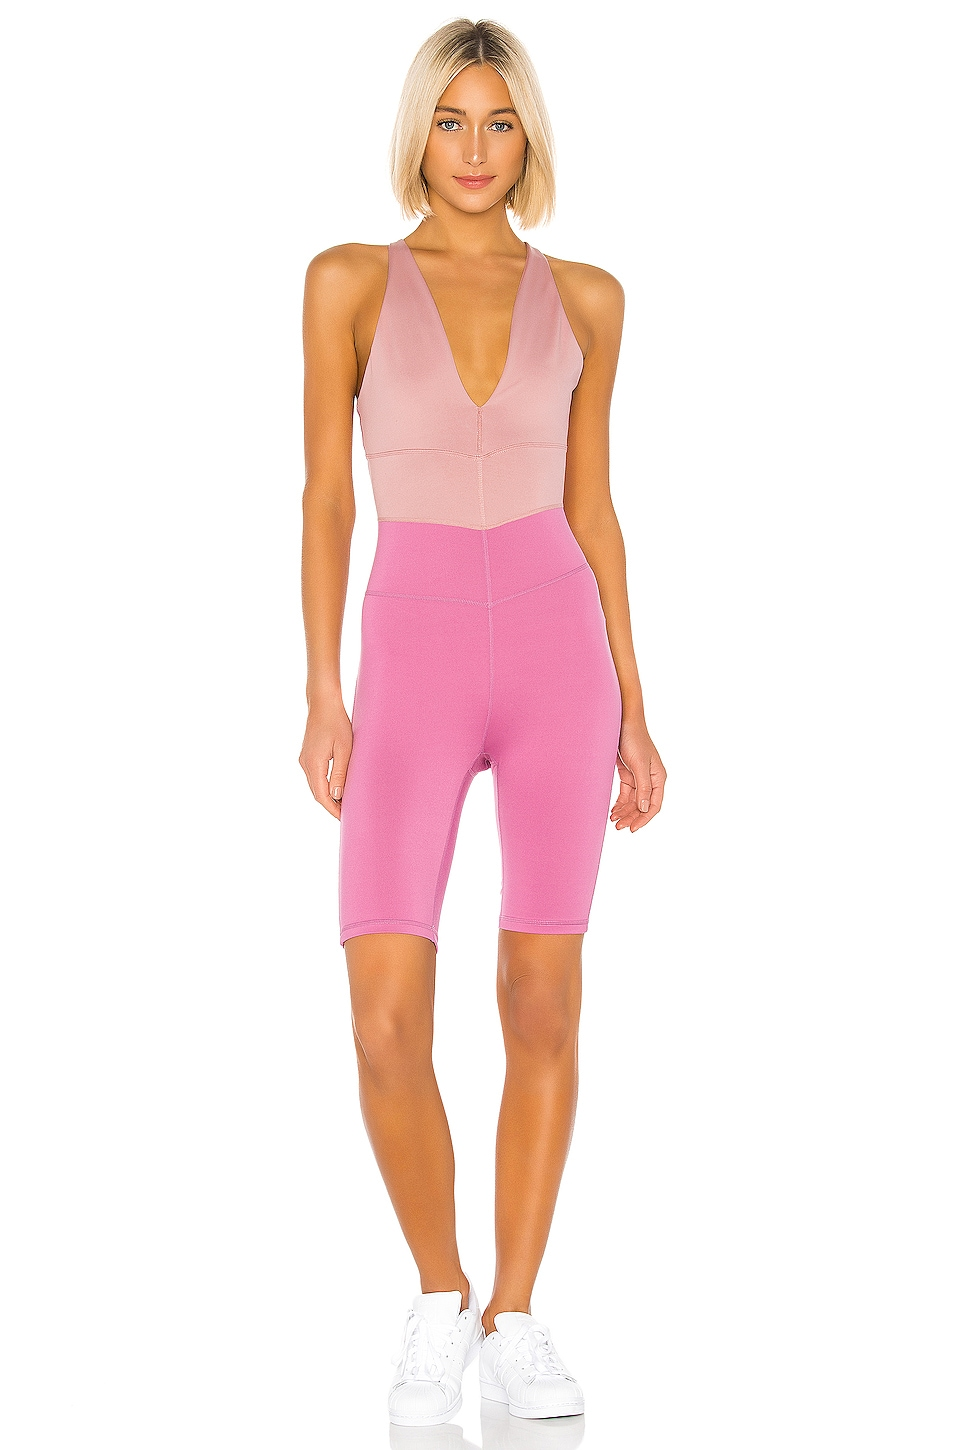 Free People X FP Movement Total Triumph One Piece in Mulberry